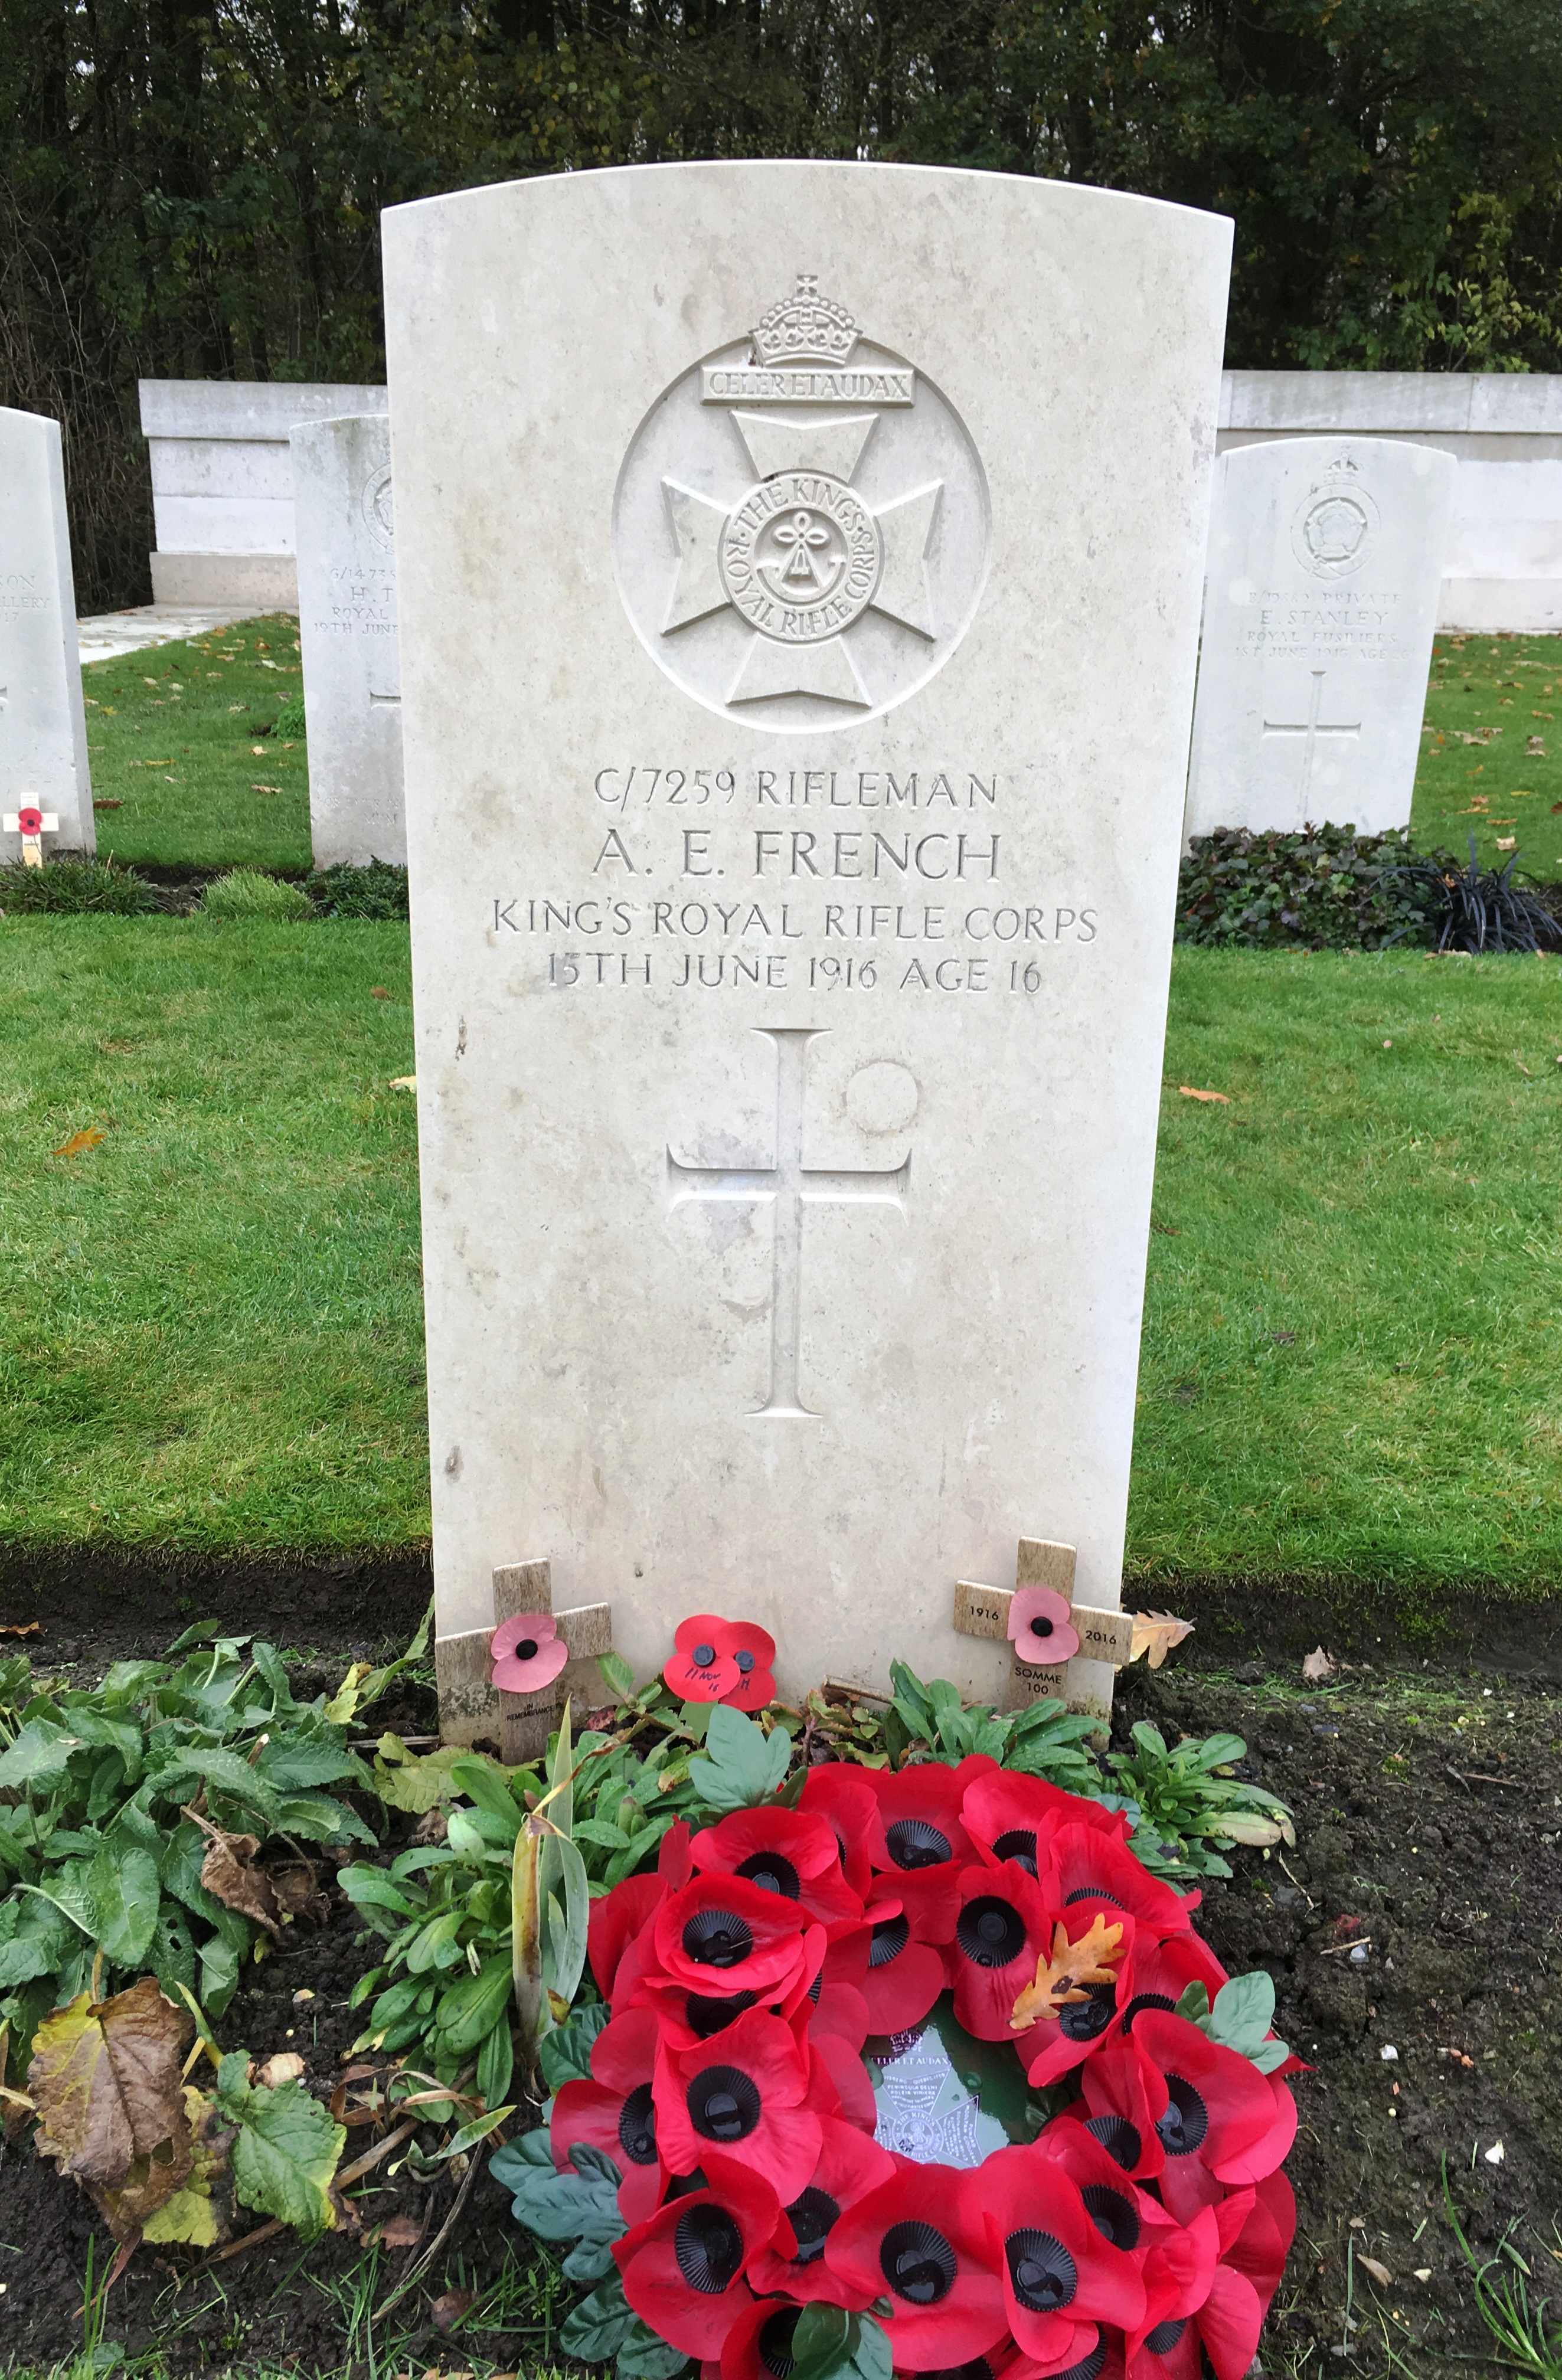 24-albert-french-only-16-years-of-age-buried-at-hyde-park-corner-royal-berks-cemetery-ypres-salient